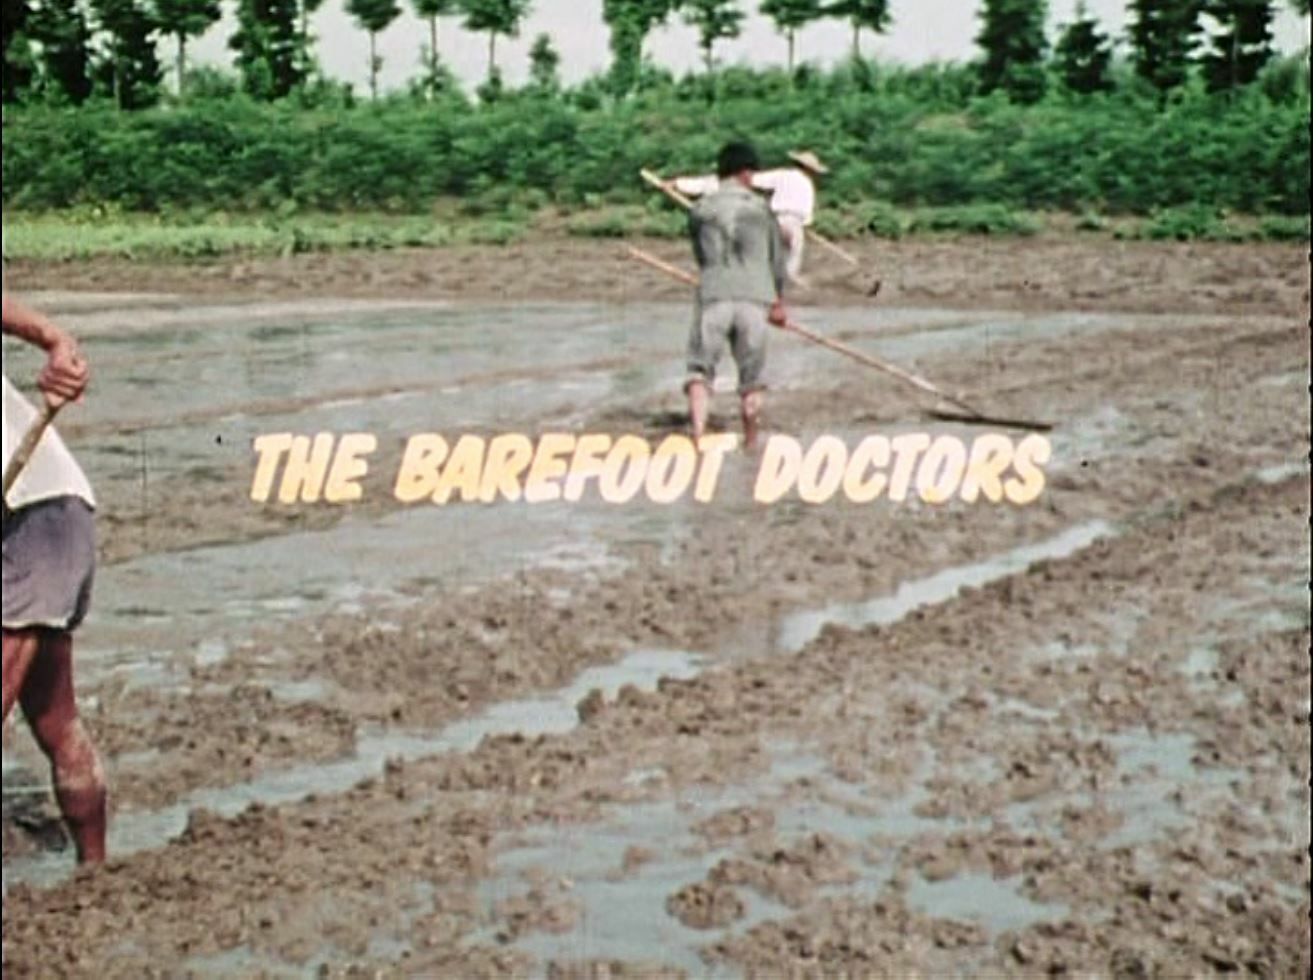 THE BAREFOOT DOCTORS OF RURAL CHINA